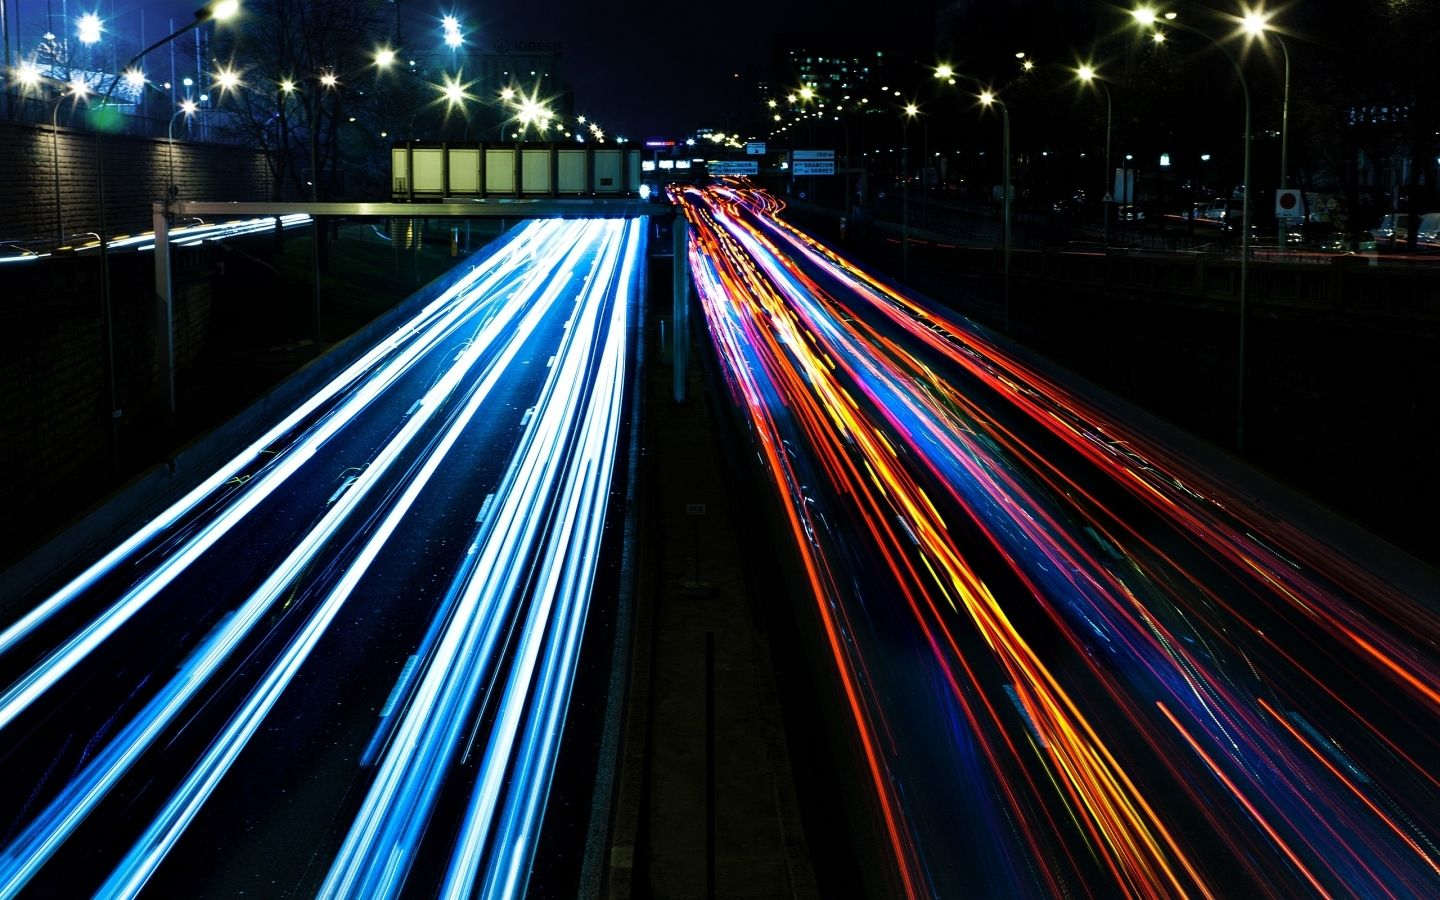 Highway Lights Macbook Pro Wallpaper Hd Wallpapers Pinterest